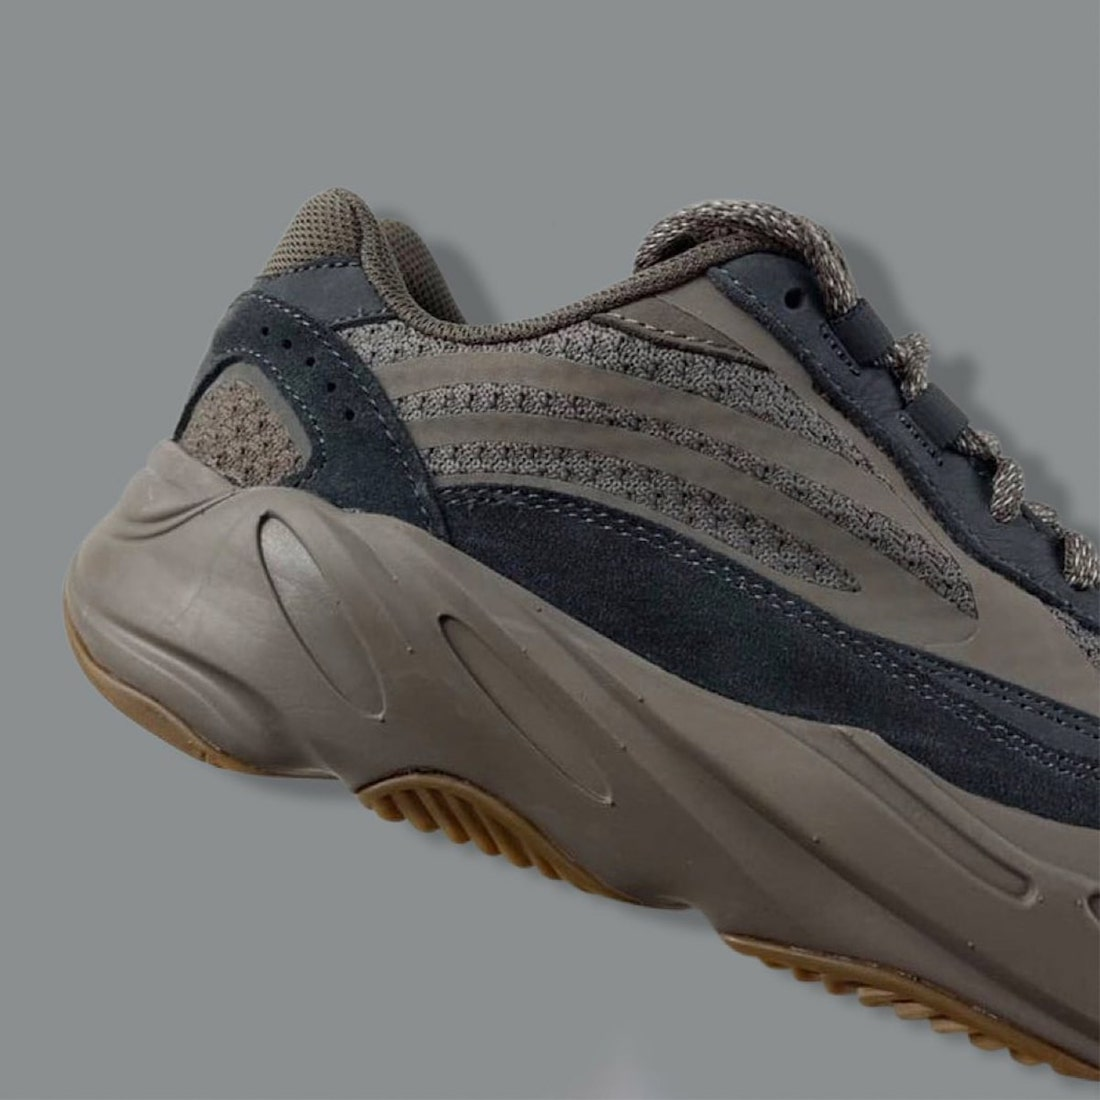 adidas Yeezy Boost 700 V2 Mauve Release Date Price